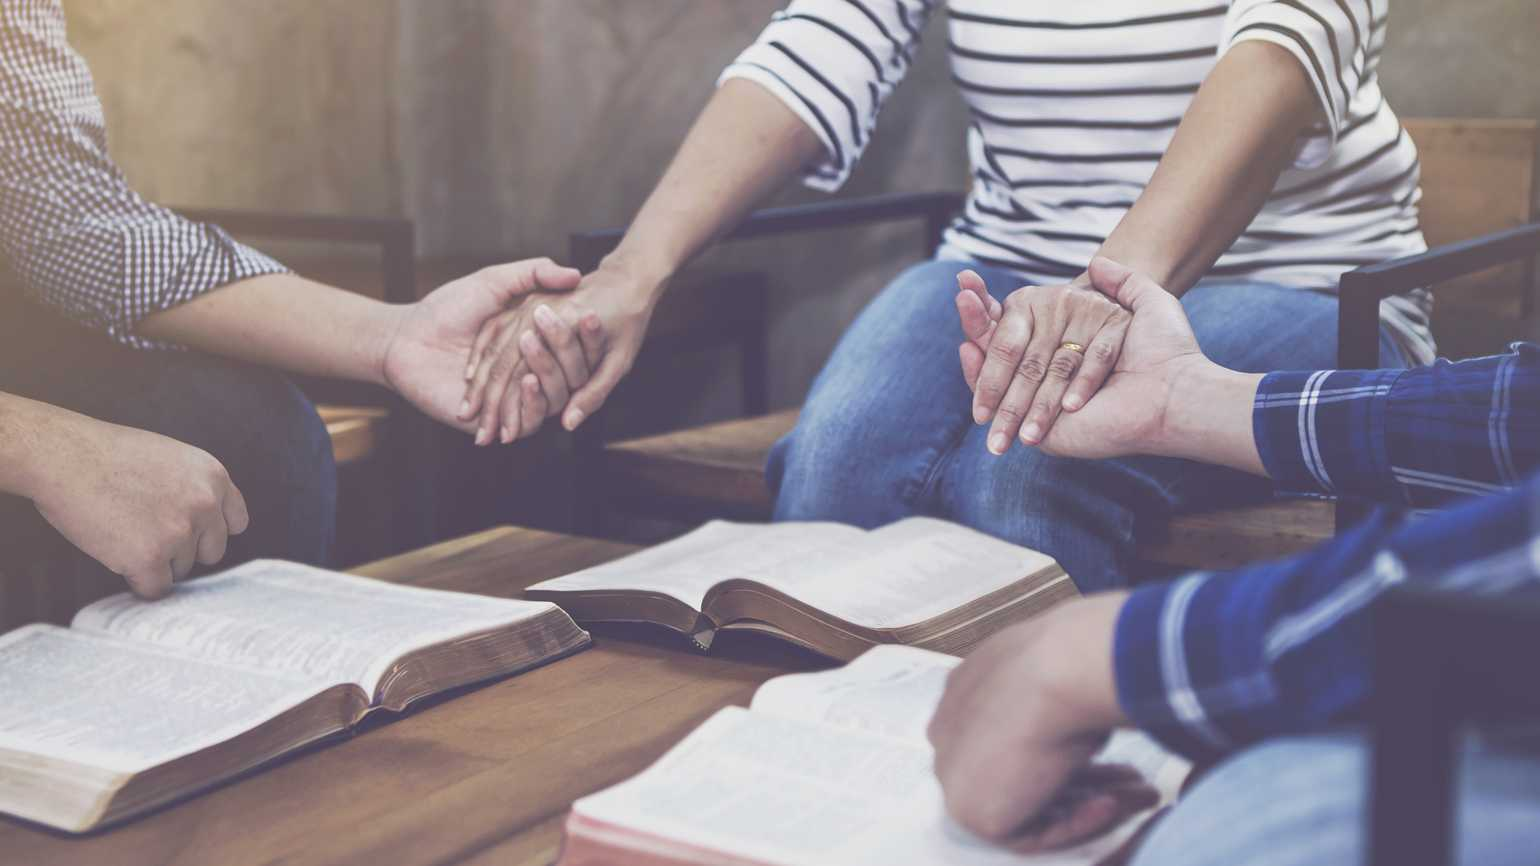 A group holding hands in prayer.